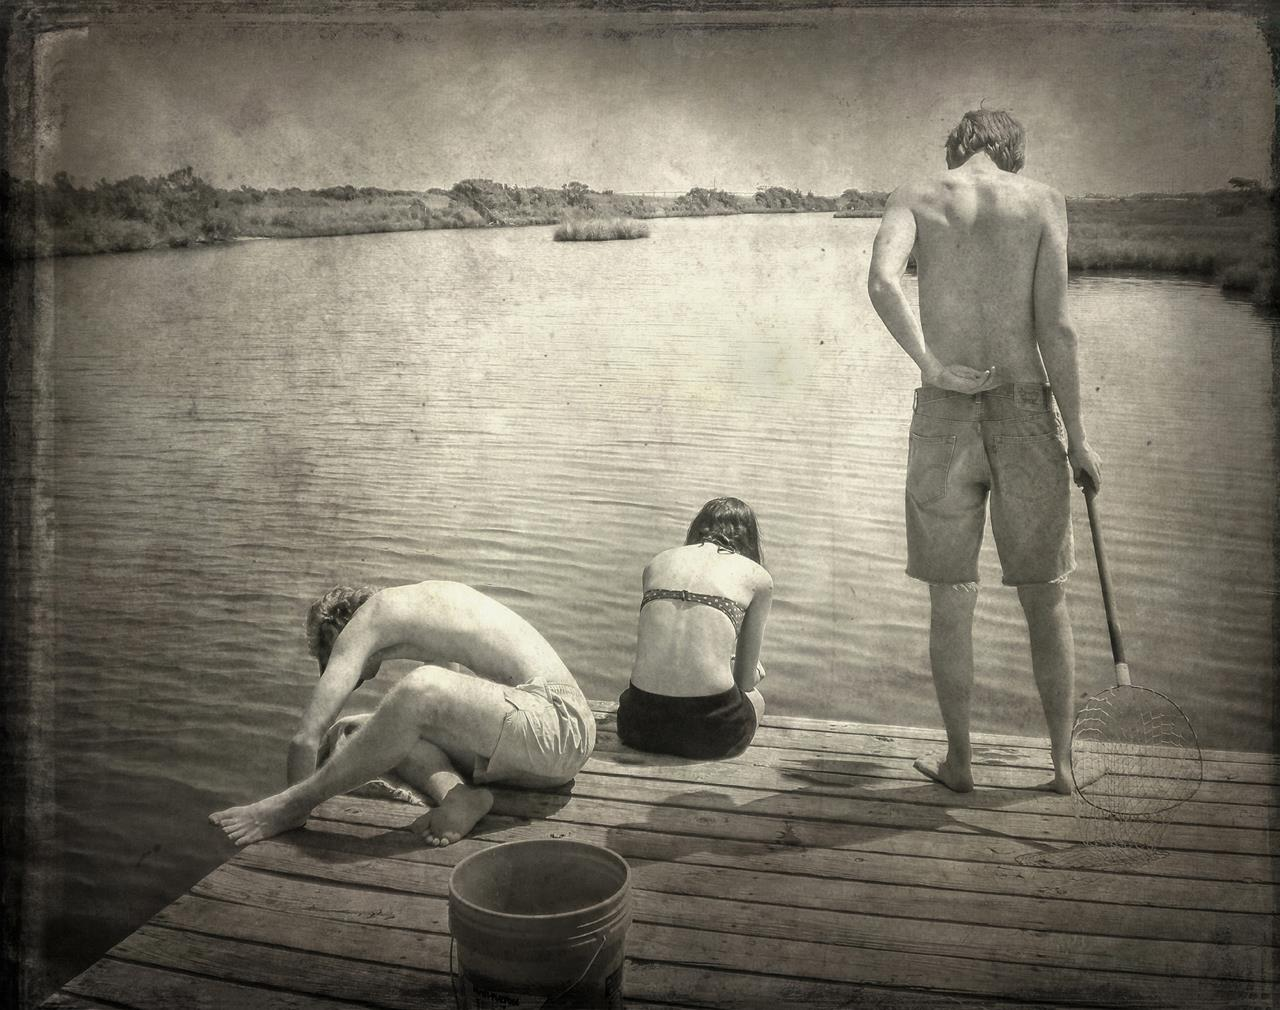 Crabbing, © Dale Niles, Fayetteville, GA, First Prize, Santa Fe Photographic — Summer vacation